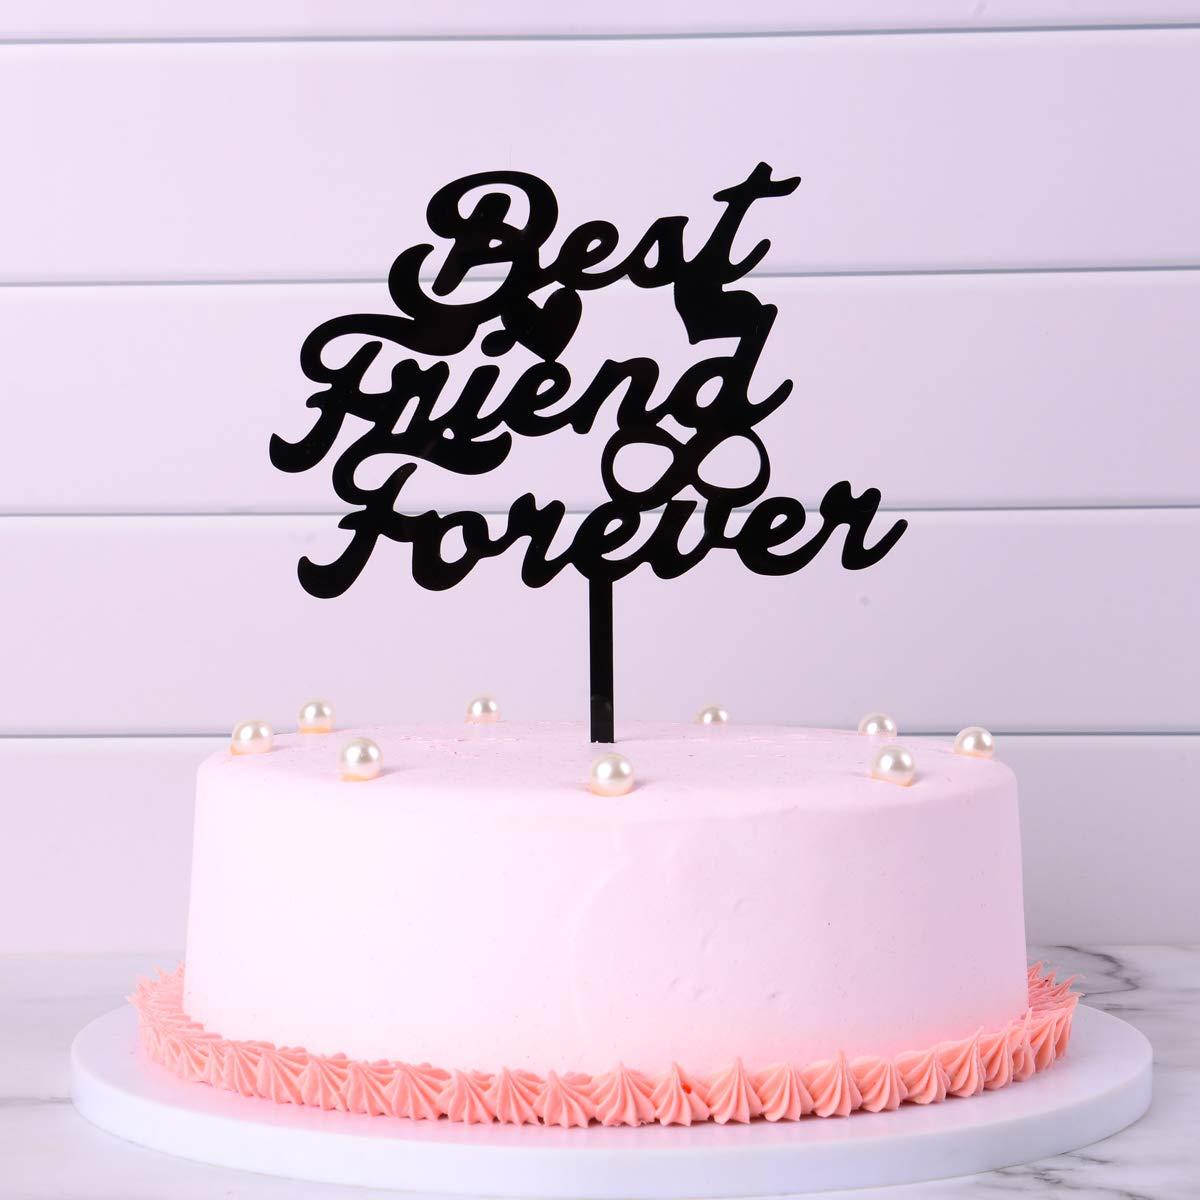 Happy Birthday Cake Topper Best Friend Forever Black Cake Topper For Friends Birthday Party Birthday Gift To Best Friends Boys And Girls Amazon Com Grocery Gourmet Food